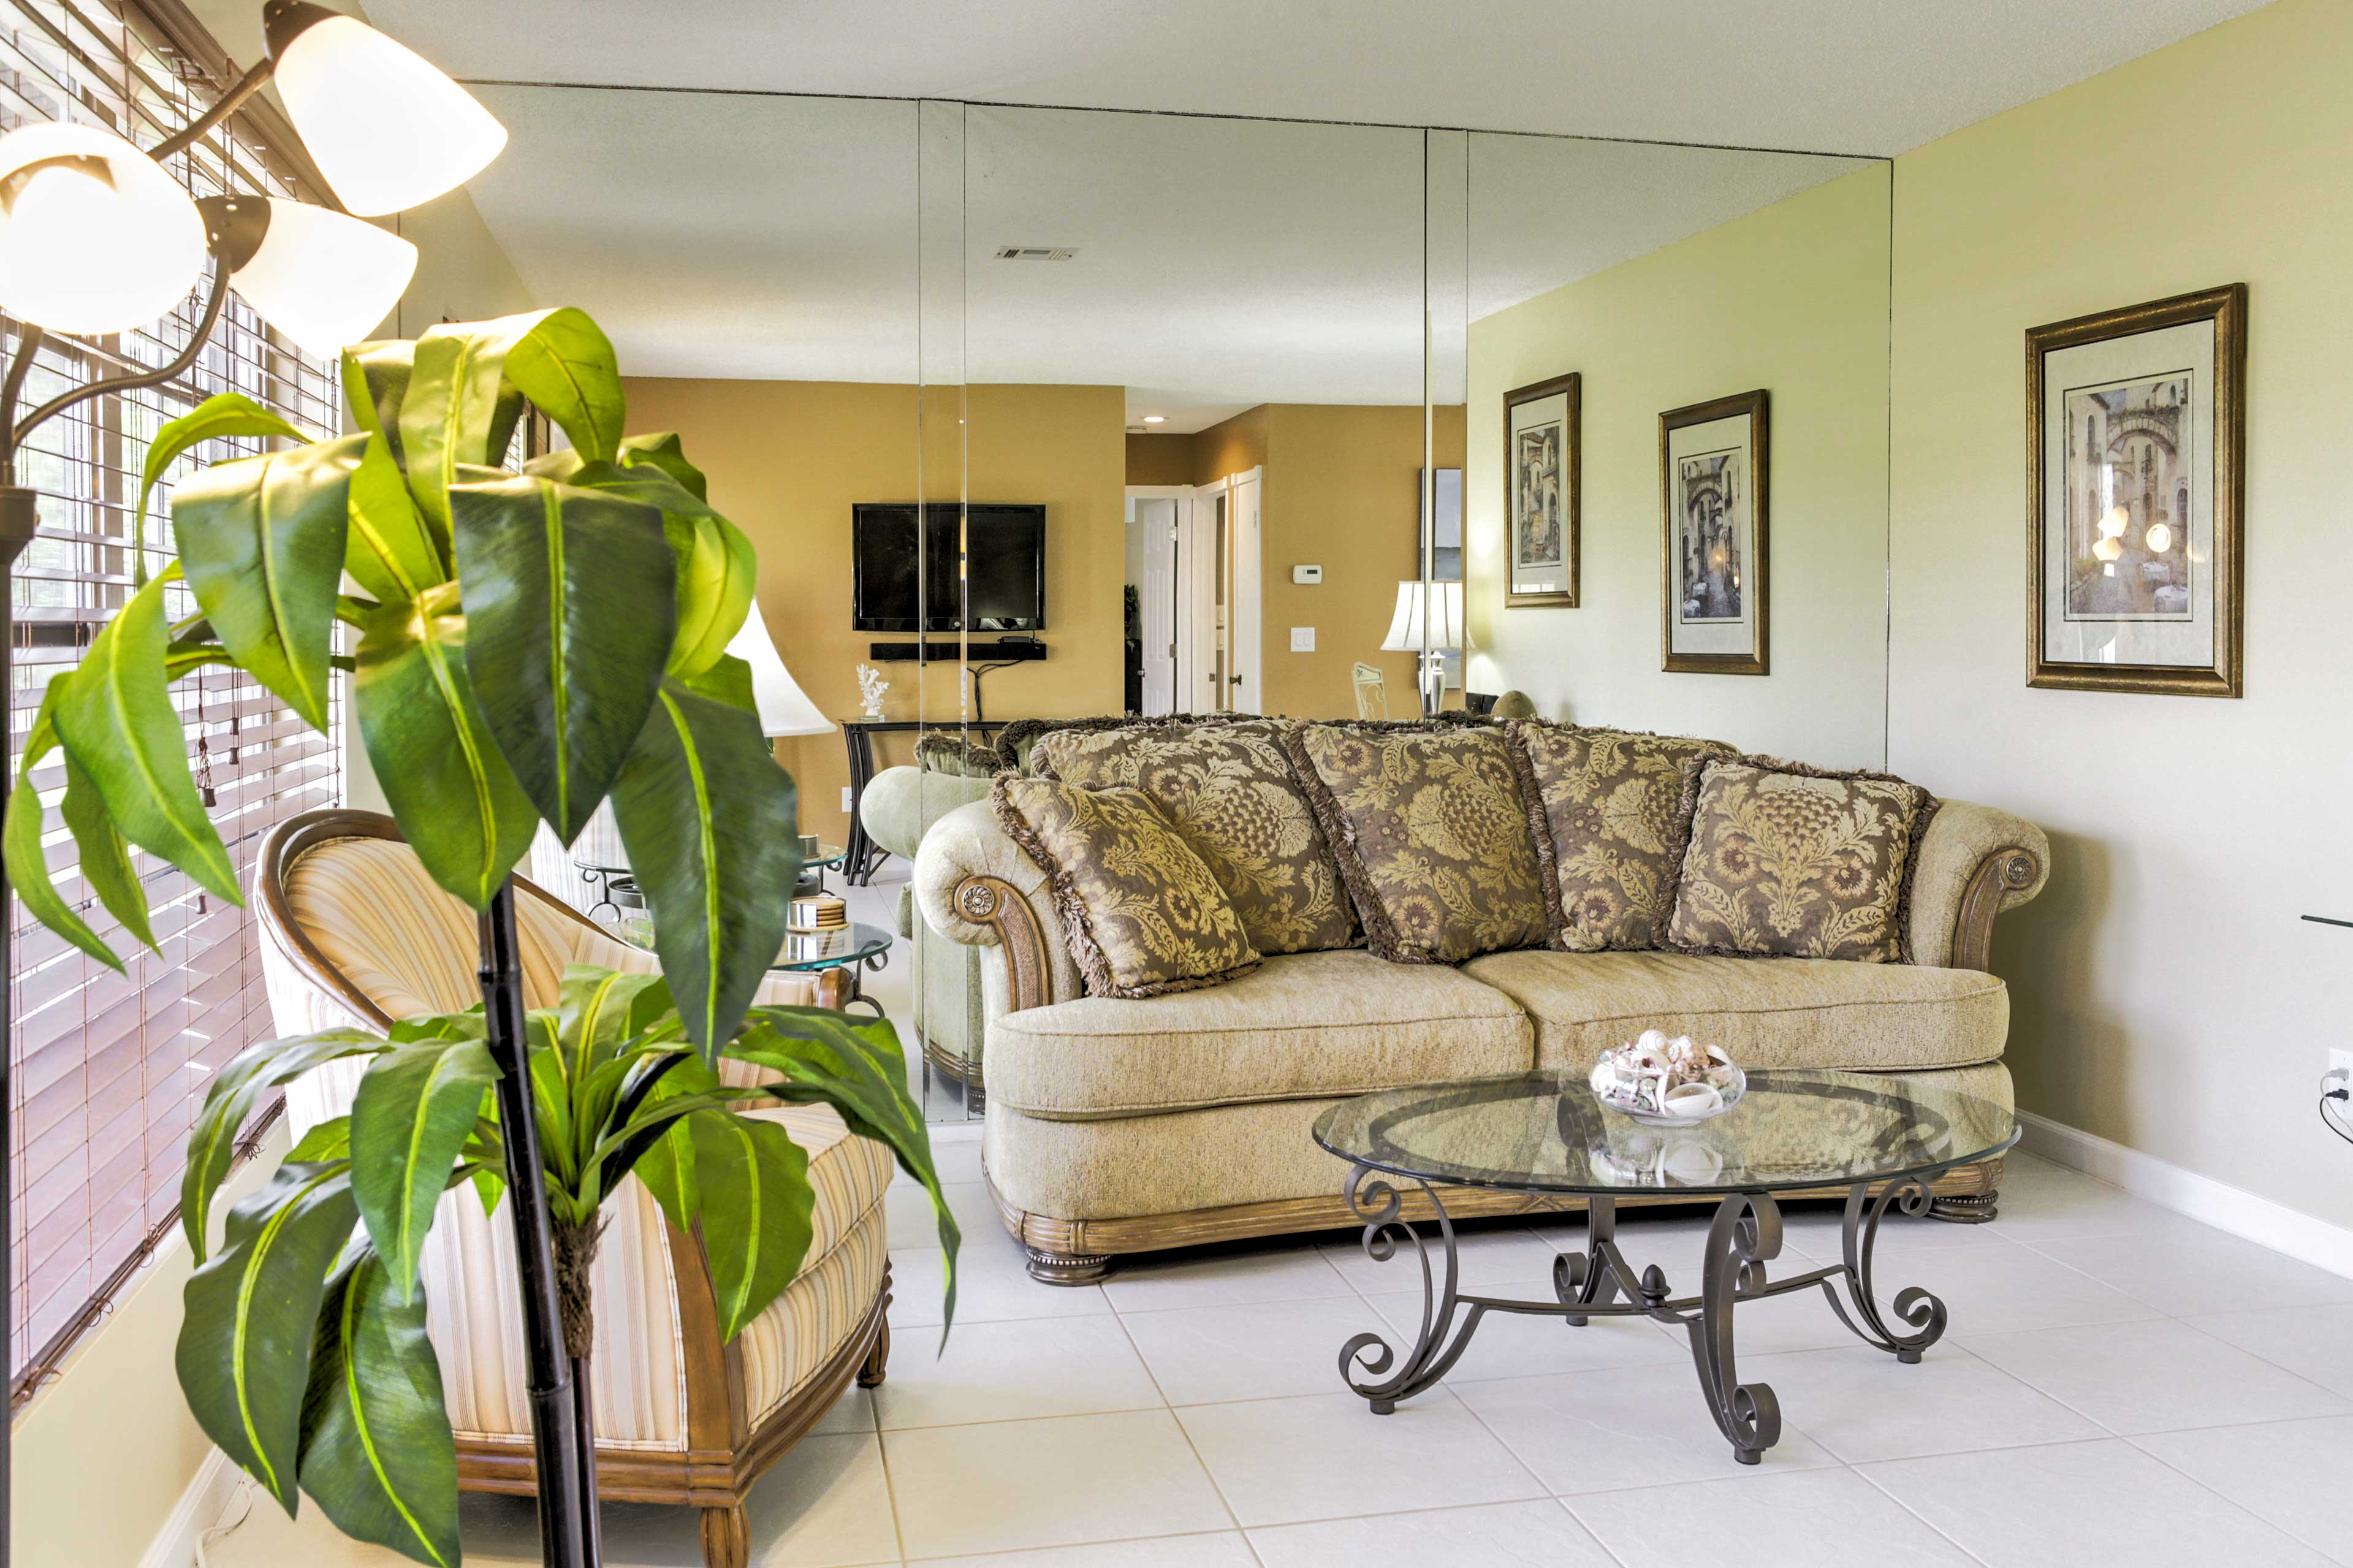 Sink into the sofa in the living room and watch your shows on the flat-screen TV.